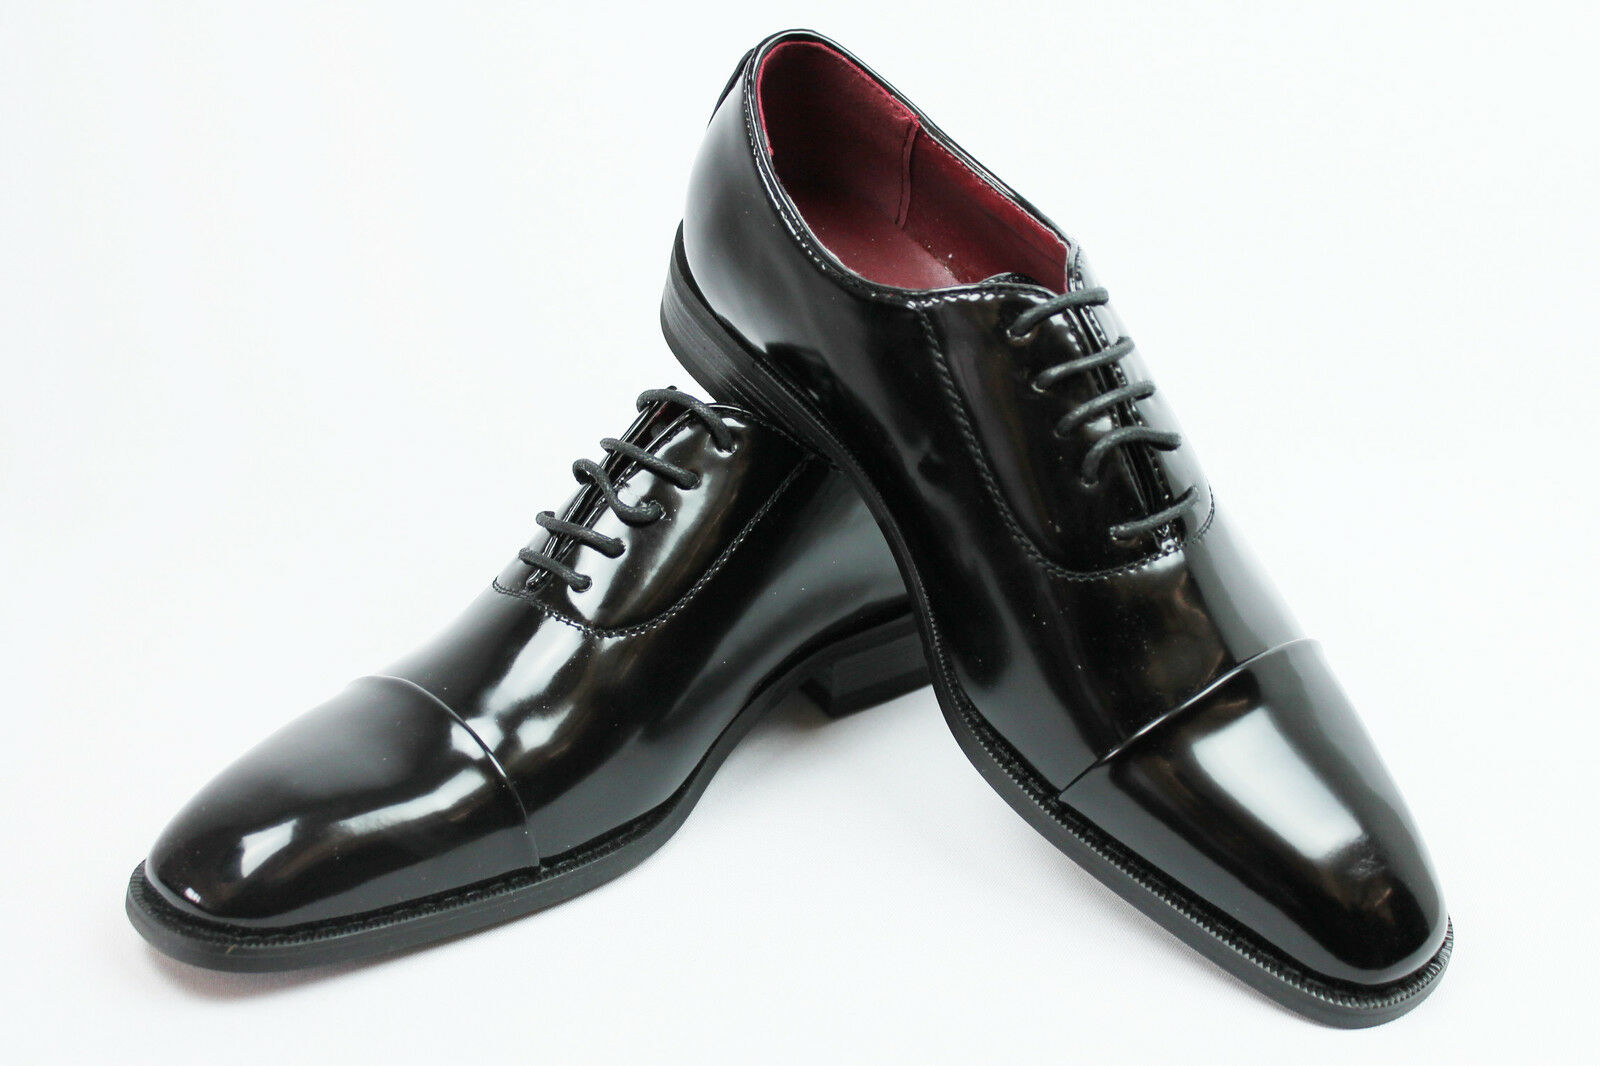 Patent Leather Dress Shoes For Men Ebay